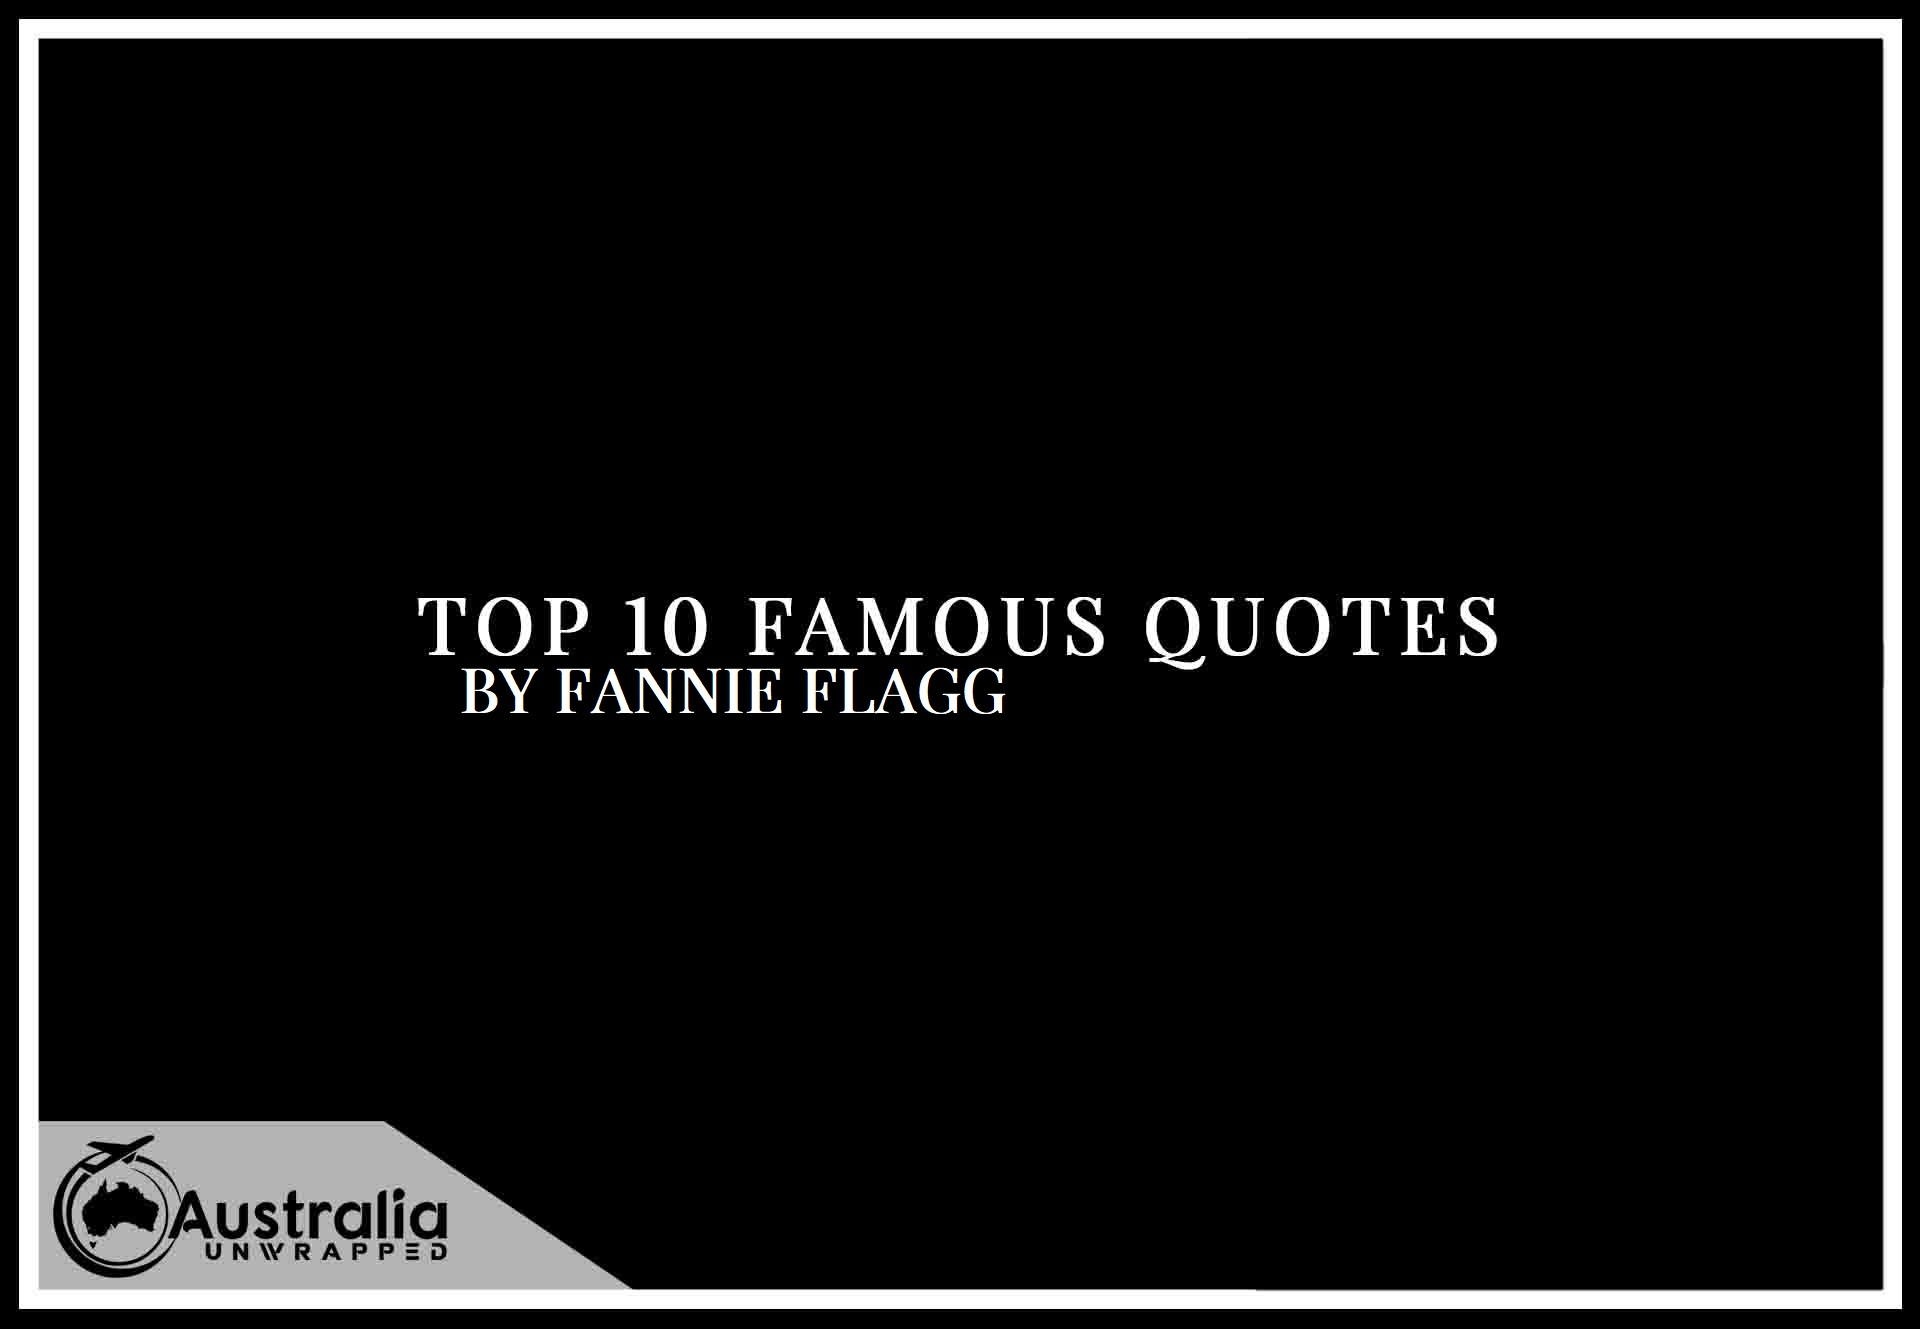 Top 10 Famous Quotes by Author Fannie Flagg